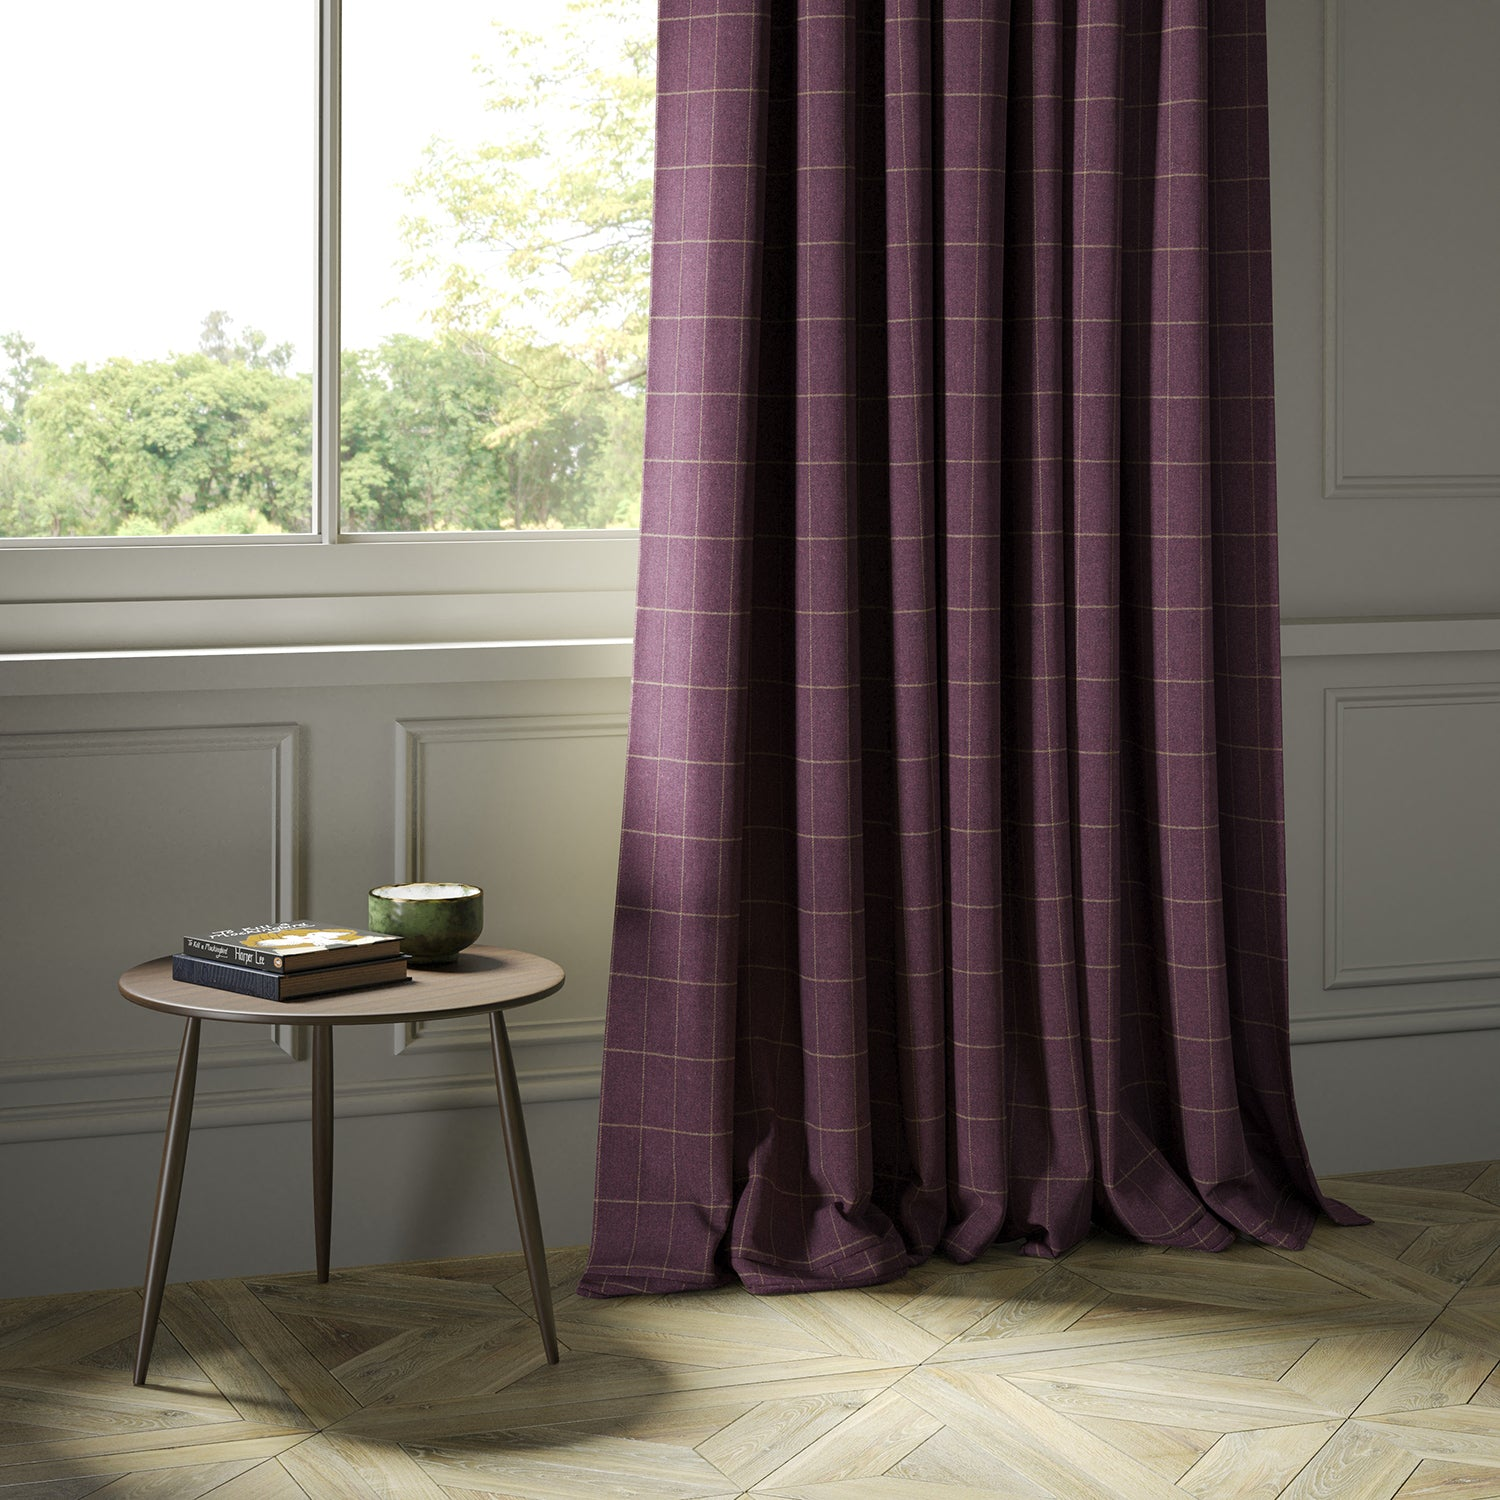 Curtains in a purple Scottish wool windowpane check fabric